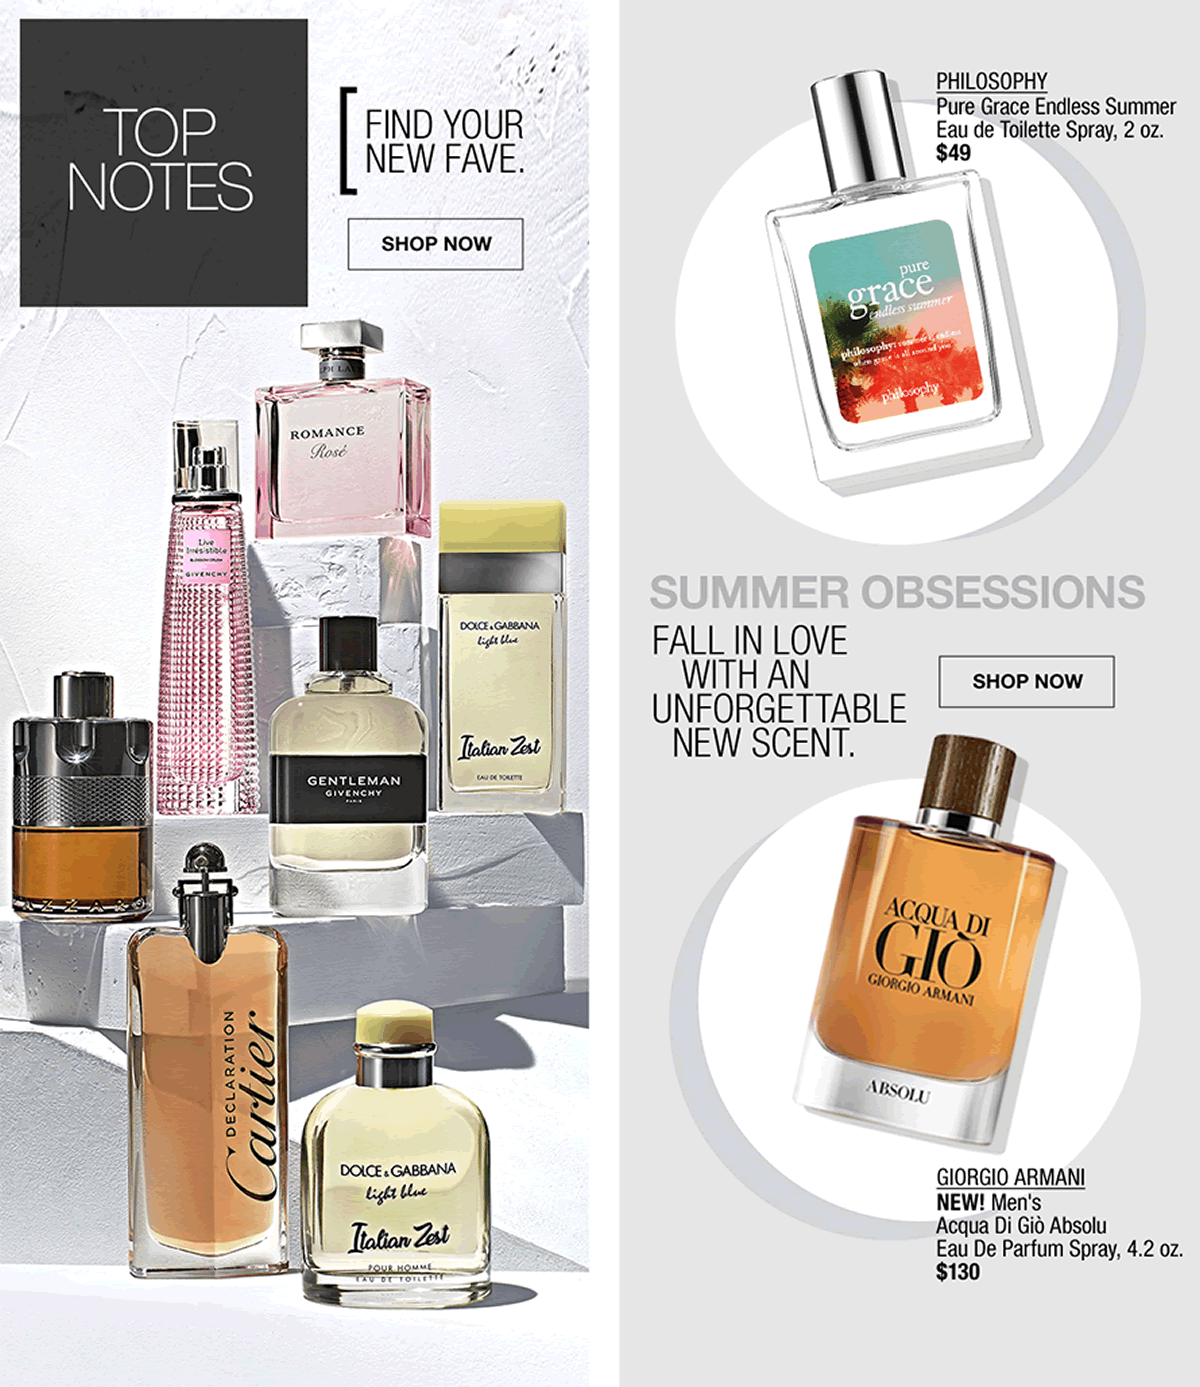 Top Notes, Find Your New Fave, Shop Now, Philosophy, Pure Grace Endless Summer Eau de Toilette Spray, 2 oz, $49, Summer Obsessions, Fall in Love with an Unforgettable New Scent, Giorgio Armani